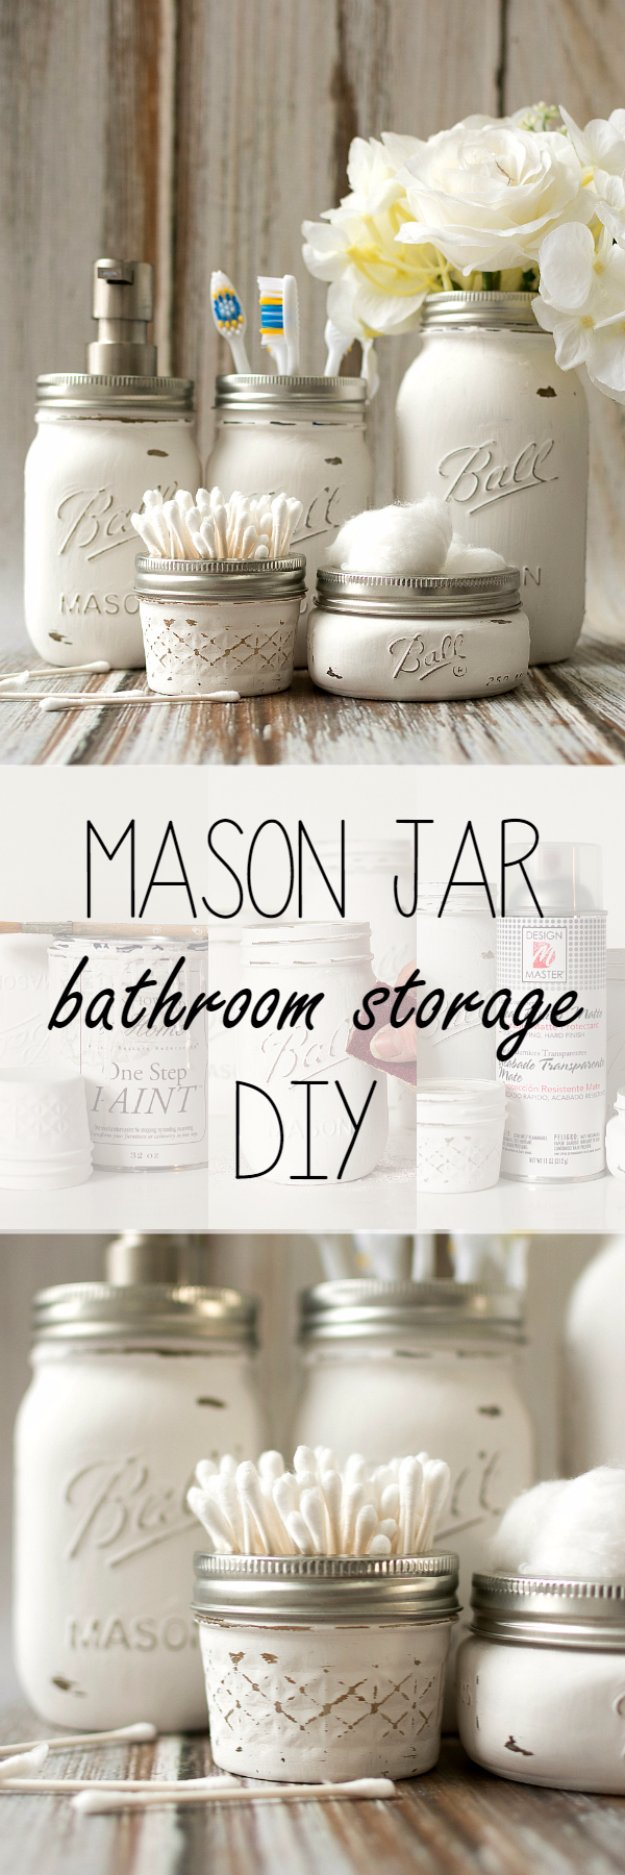 DIY Bathroom Decor Ideas - Mason Jar Bathroom Storage Accessories - Cool Do It Yourself Bath